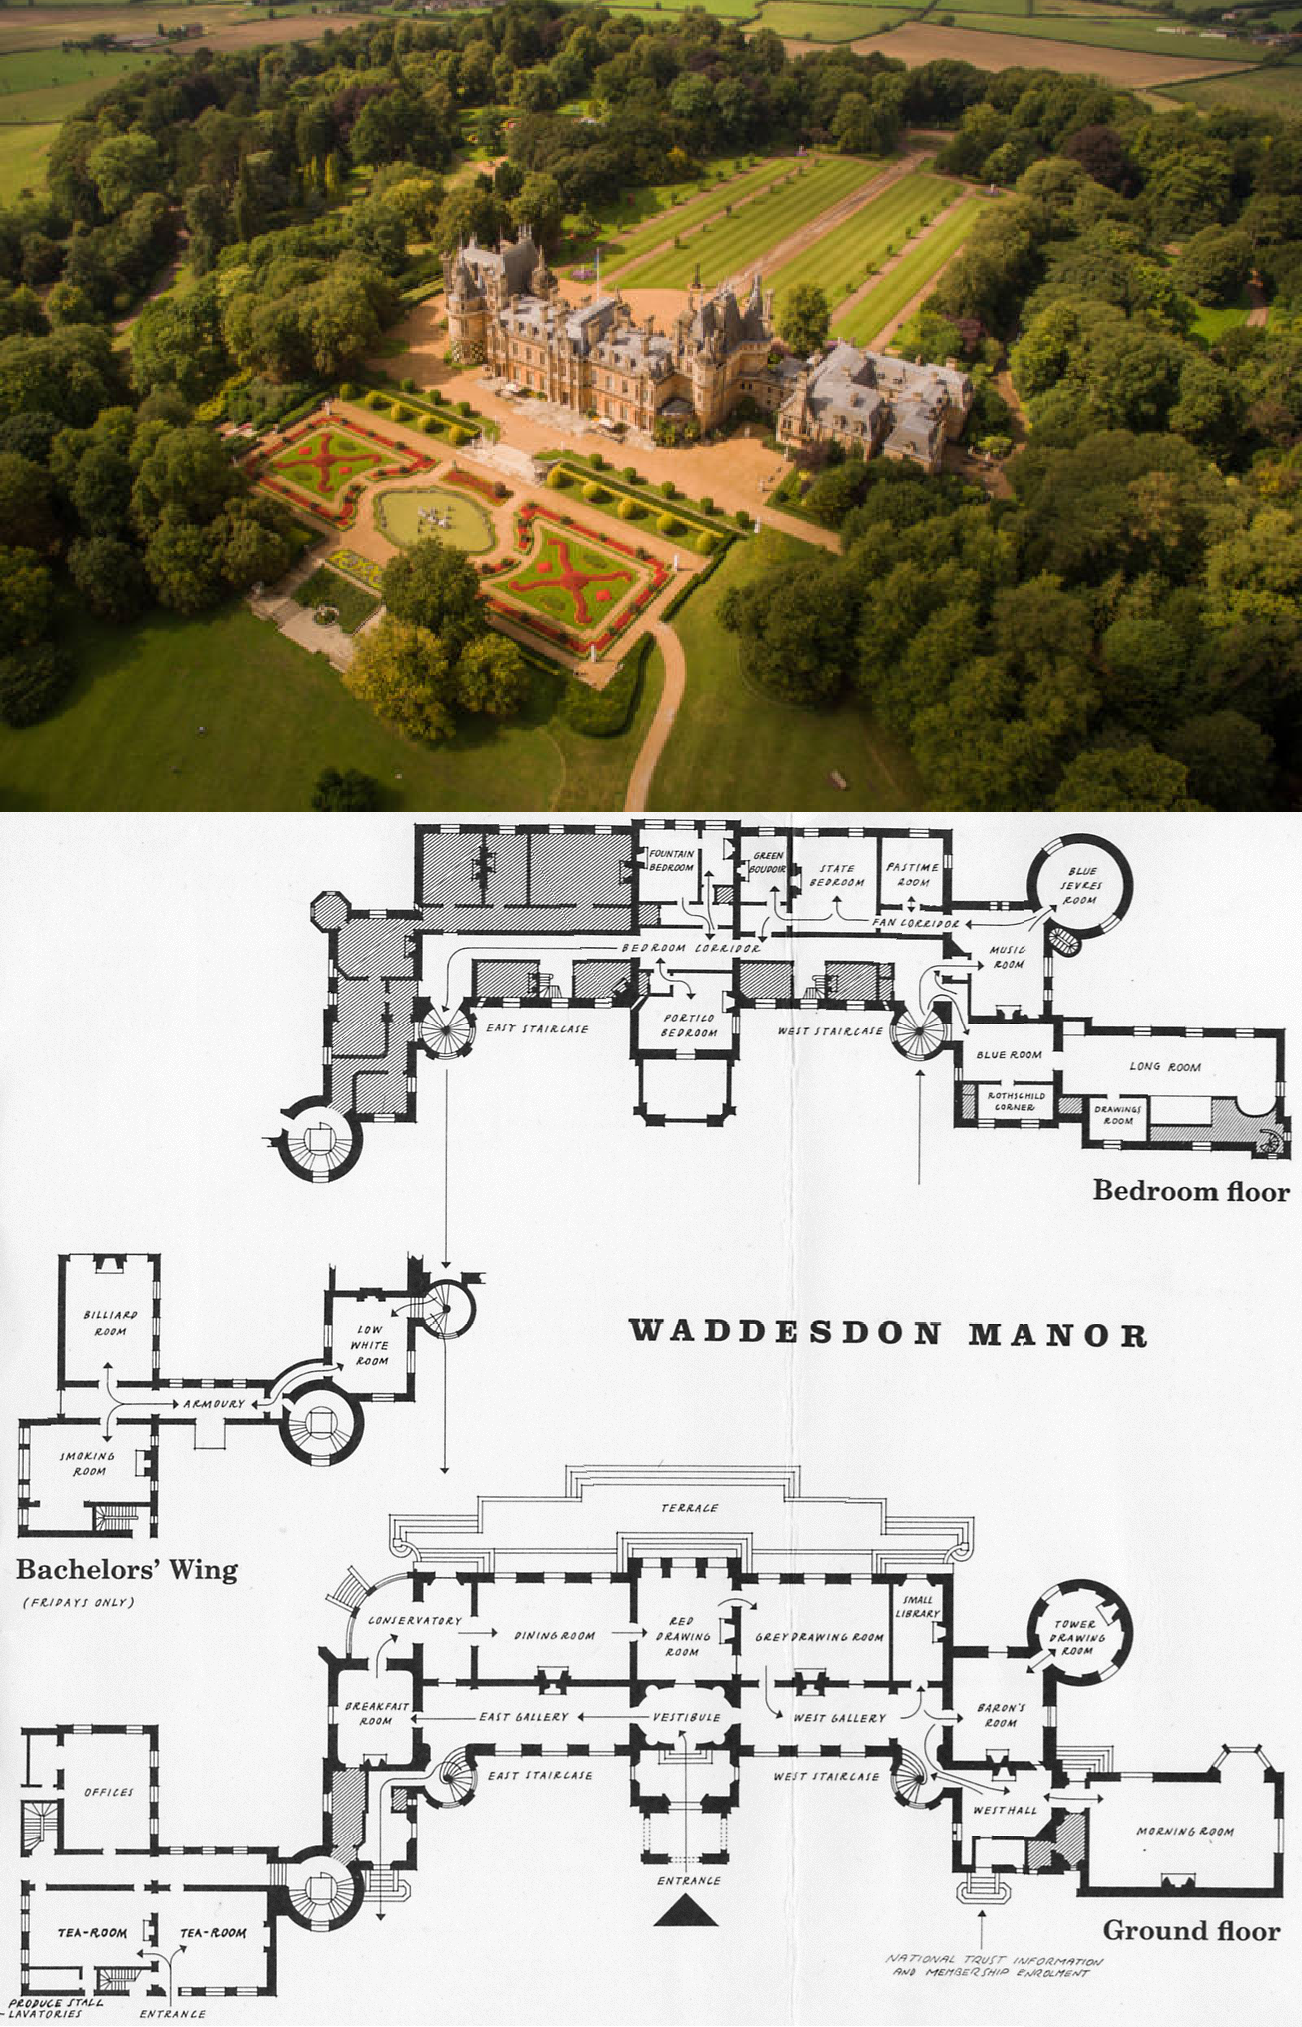 Mansion Mansion Mansion Castles Mansioncastles Tags Mansioninterior Mansionhomes Mans Castle Floor Plan Mansion Floor Plan Architectural Floor Plans